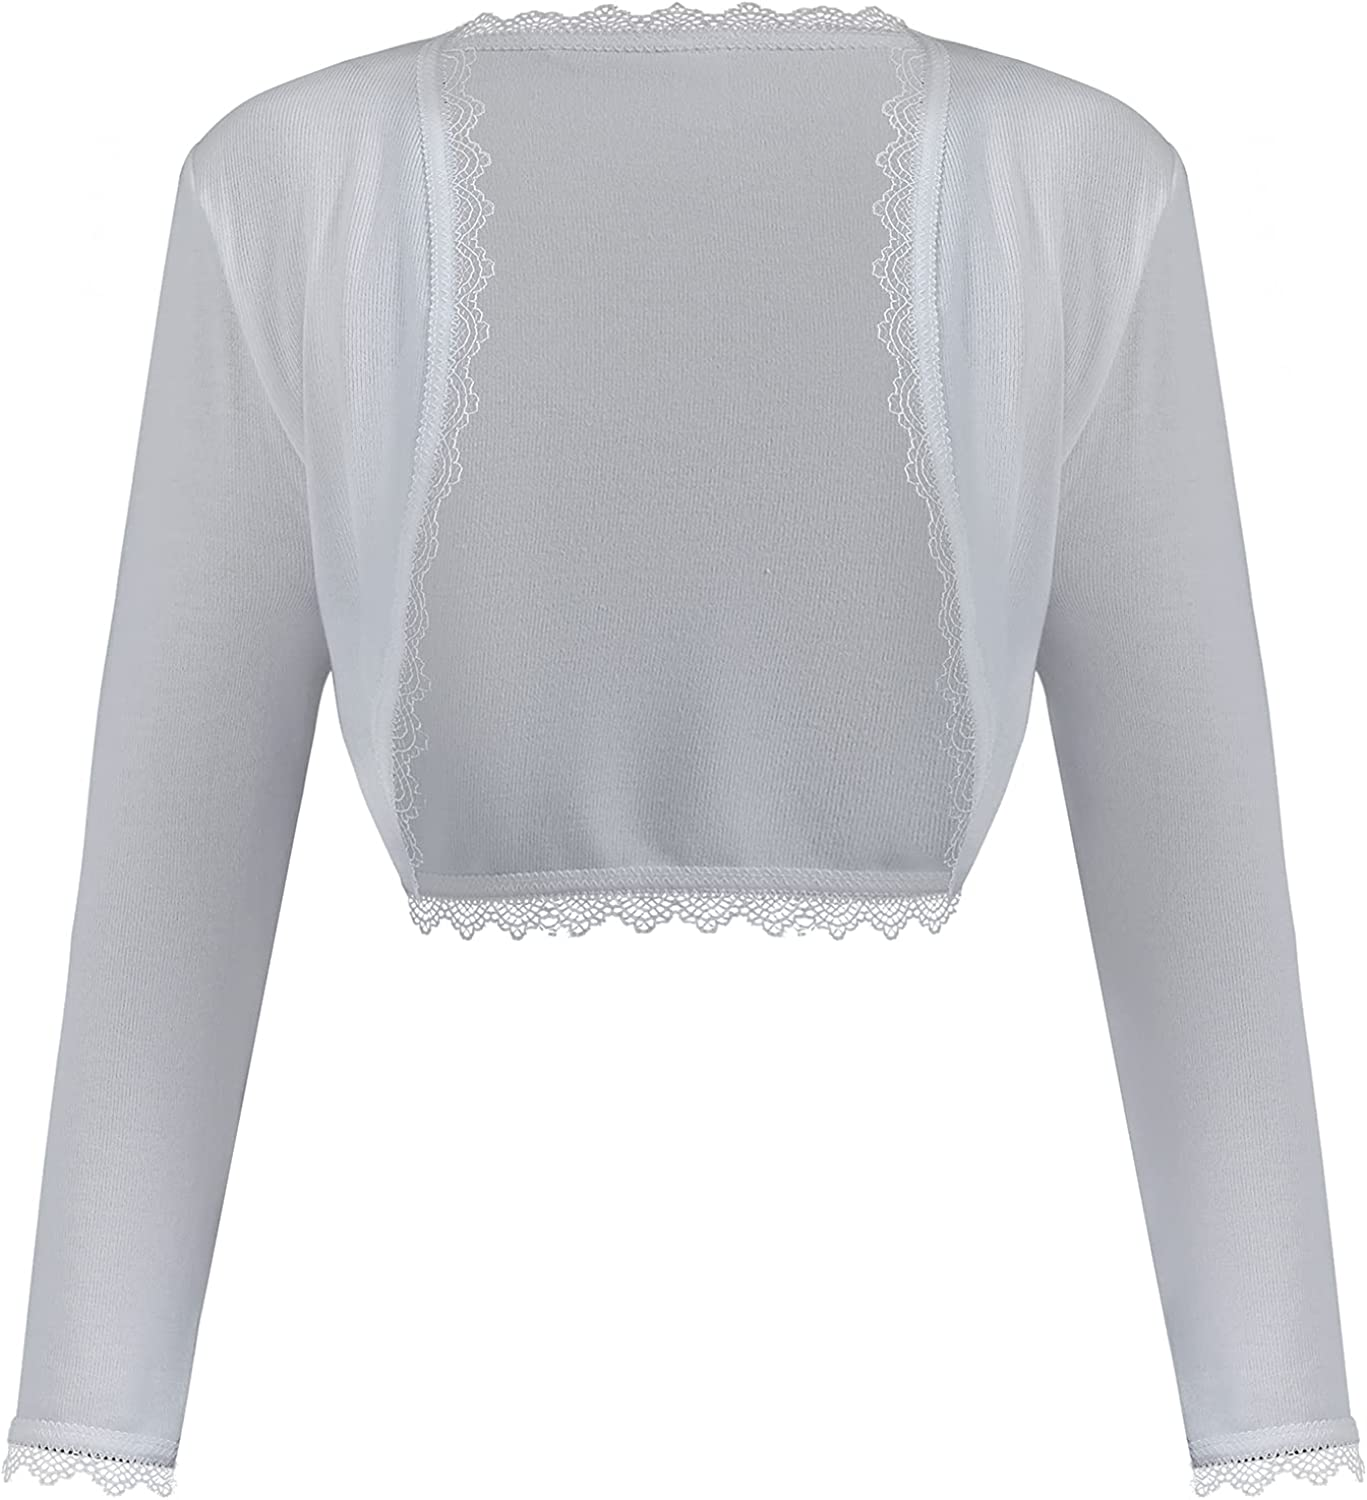 MAIYIGUFS Women's Retro Short Slim Lace Stitching Long Sleeve Cropped Cardigan Knitted Sweater